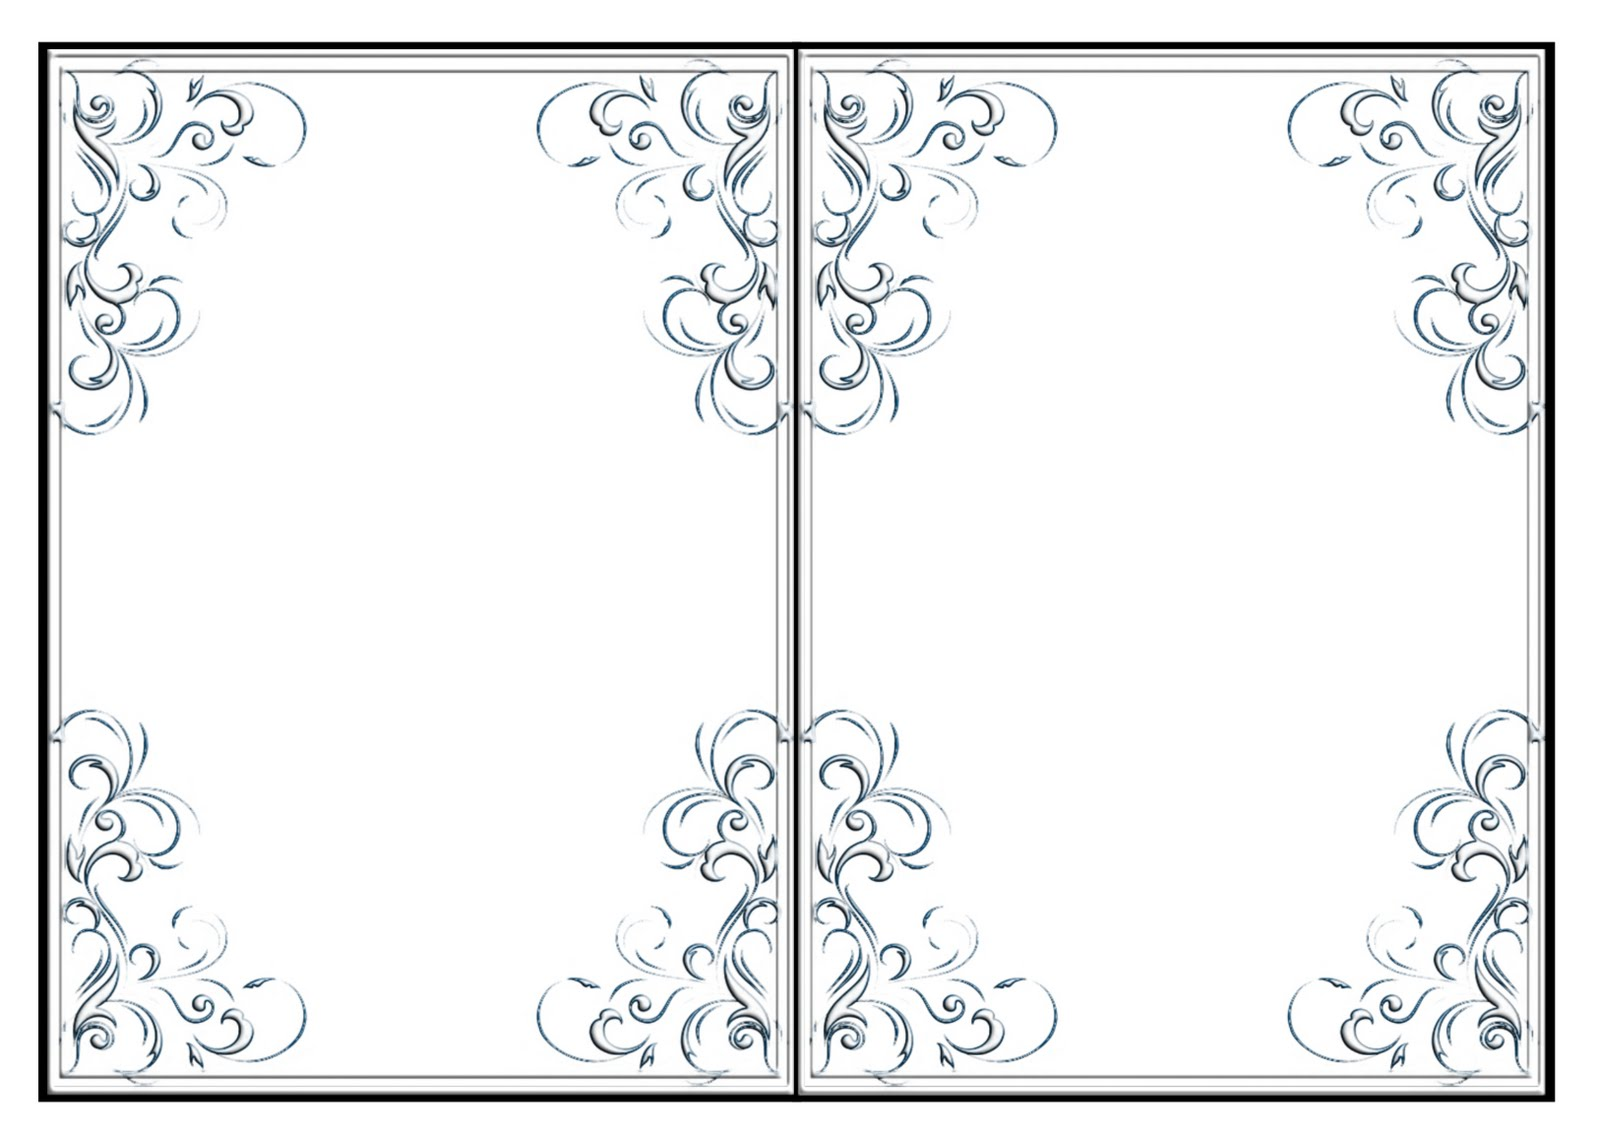 Templates for greeting card inserts 28 images greeting cards templates for greeting card inserts by simply crafts matching root card insert click to m4hsunfo